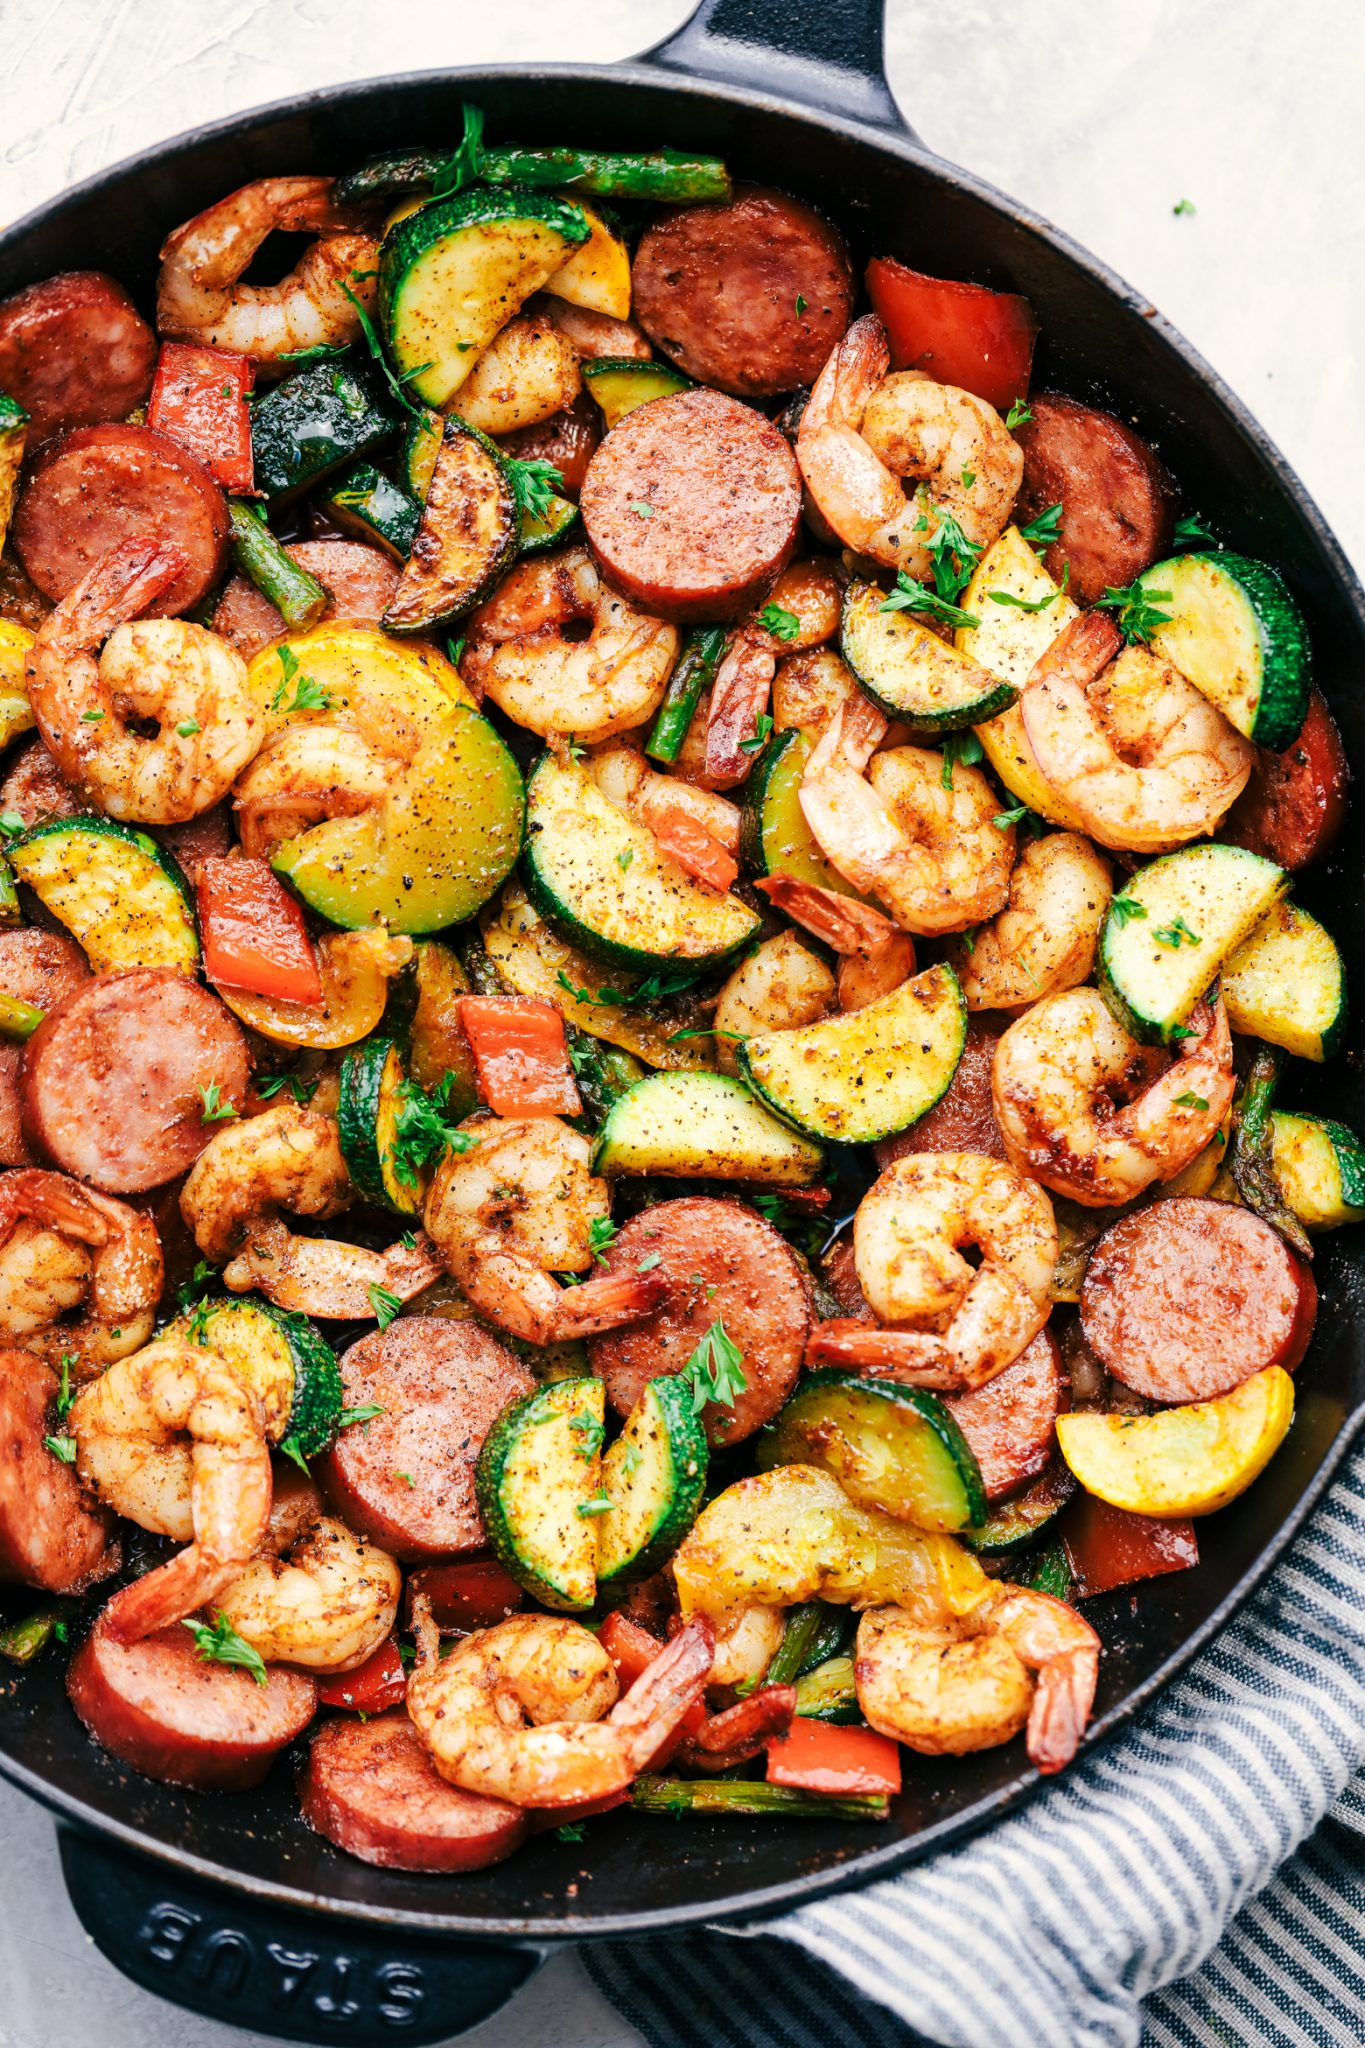 Back to School Healthy Lunches for Adults - Cajun Shrimp and Sausage Vegetable Skillet via The Recipe Critic | http://www.roseclearfield.com